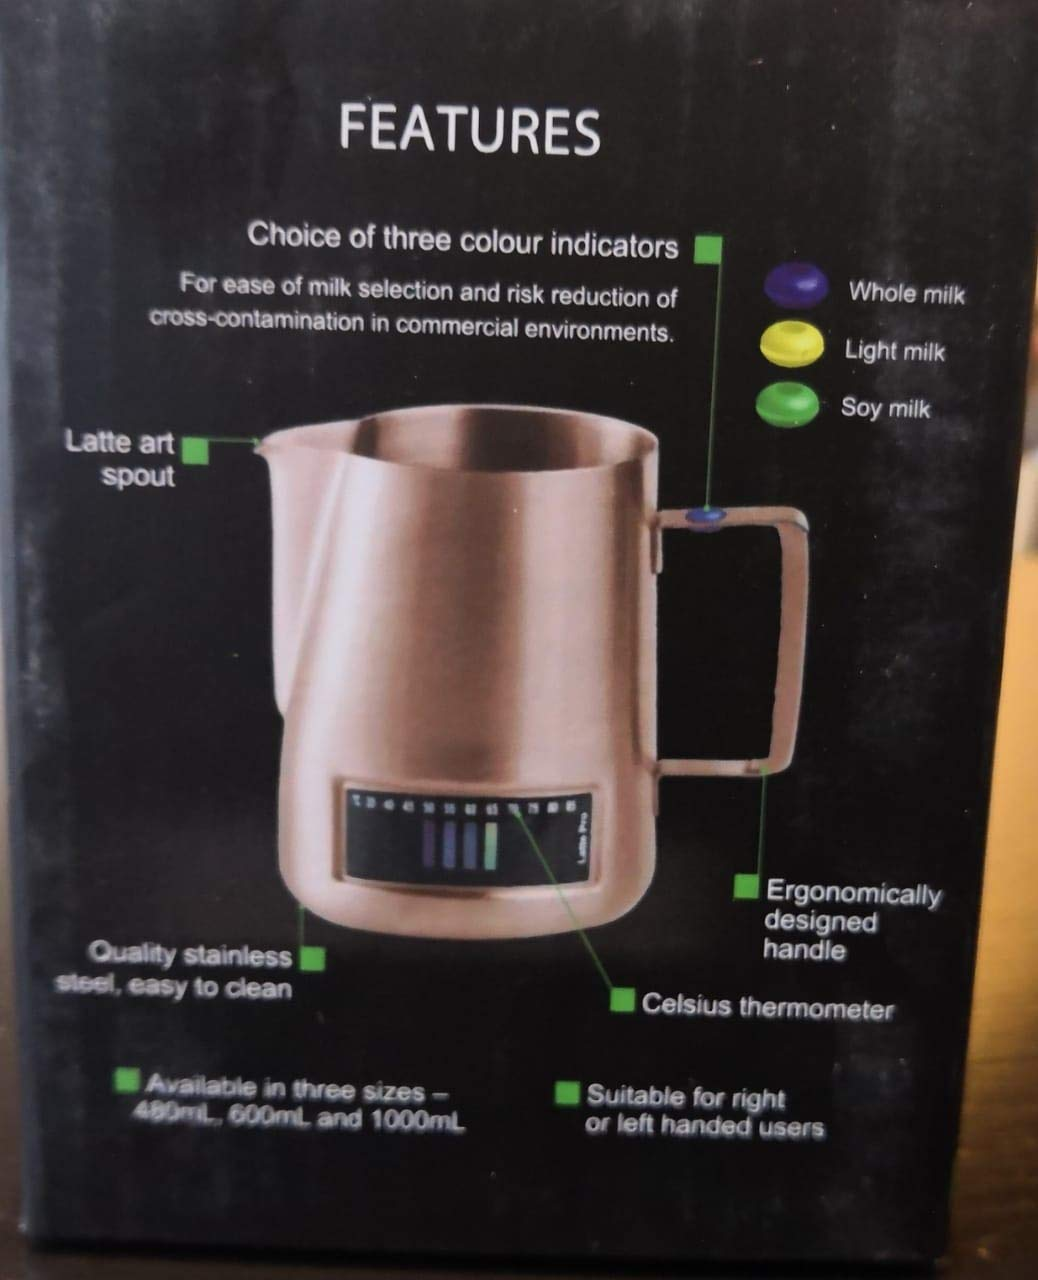 Andronicas Latte Pro Copper Temperature Control Milk Texturing Jug with Thermometer /& 3 Colour Indicator Buttons 480 ML Milk Frothing Pitcher For Milk Steaming